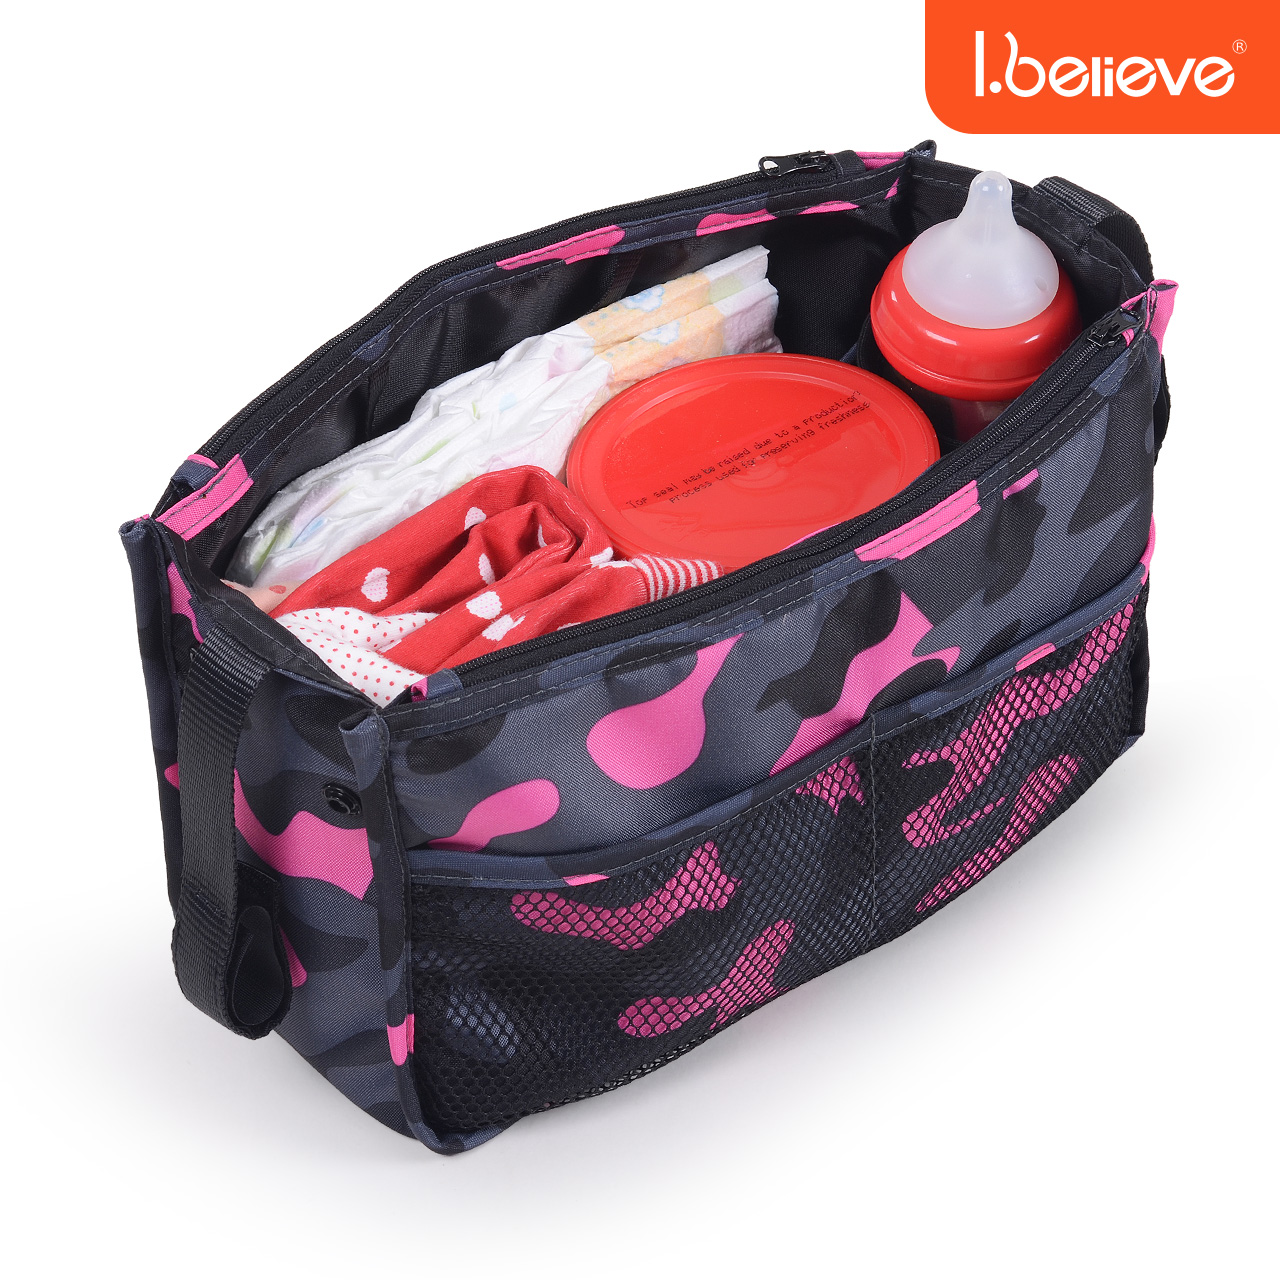 I.believe love Beili Mummy bag stroller large capacity Mummy bag multifunction hand carry bag